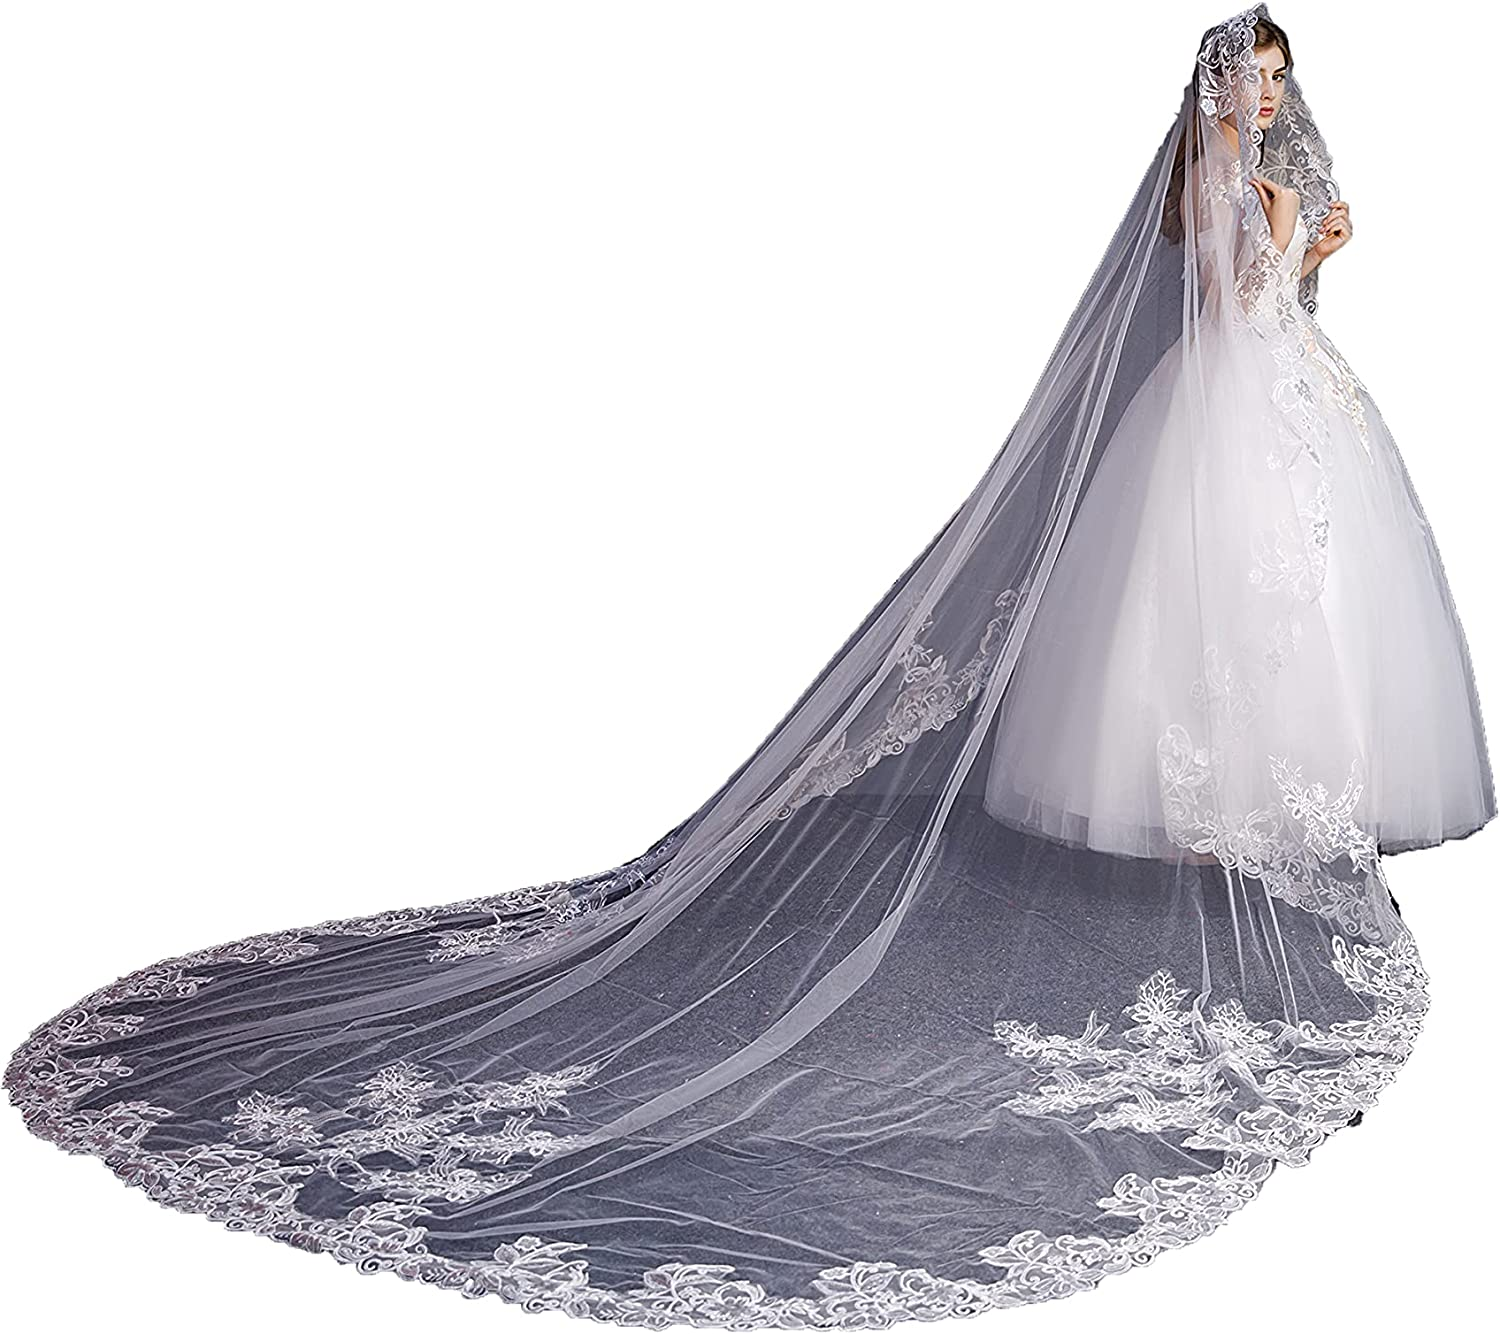 FAIOKAVER Cathedral Wedding Wholesale Veil 25% OFF Long 1 Tier 3 Bridal Size